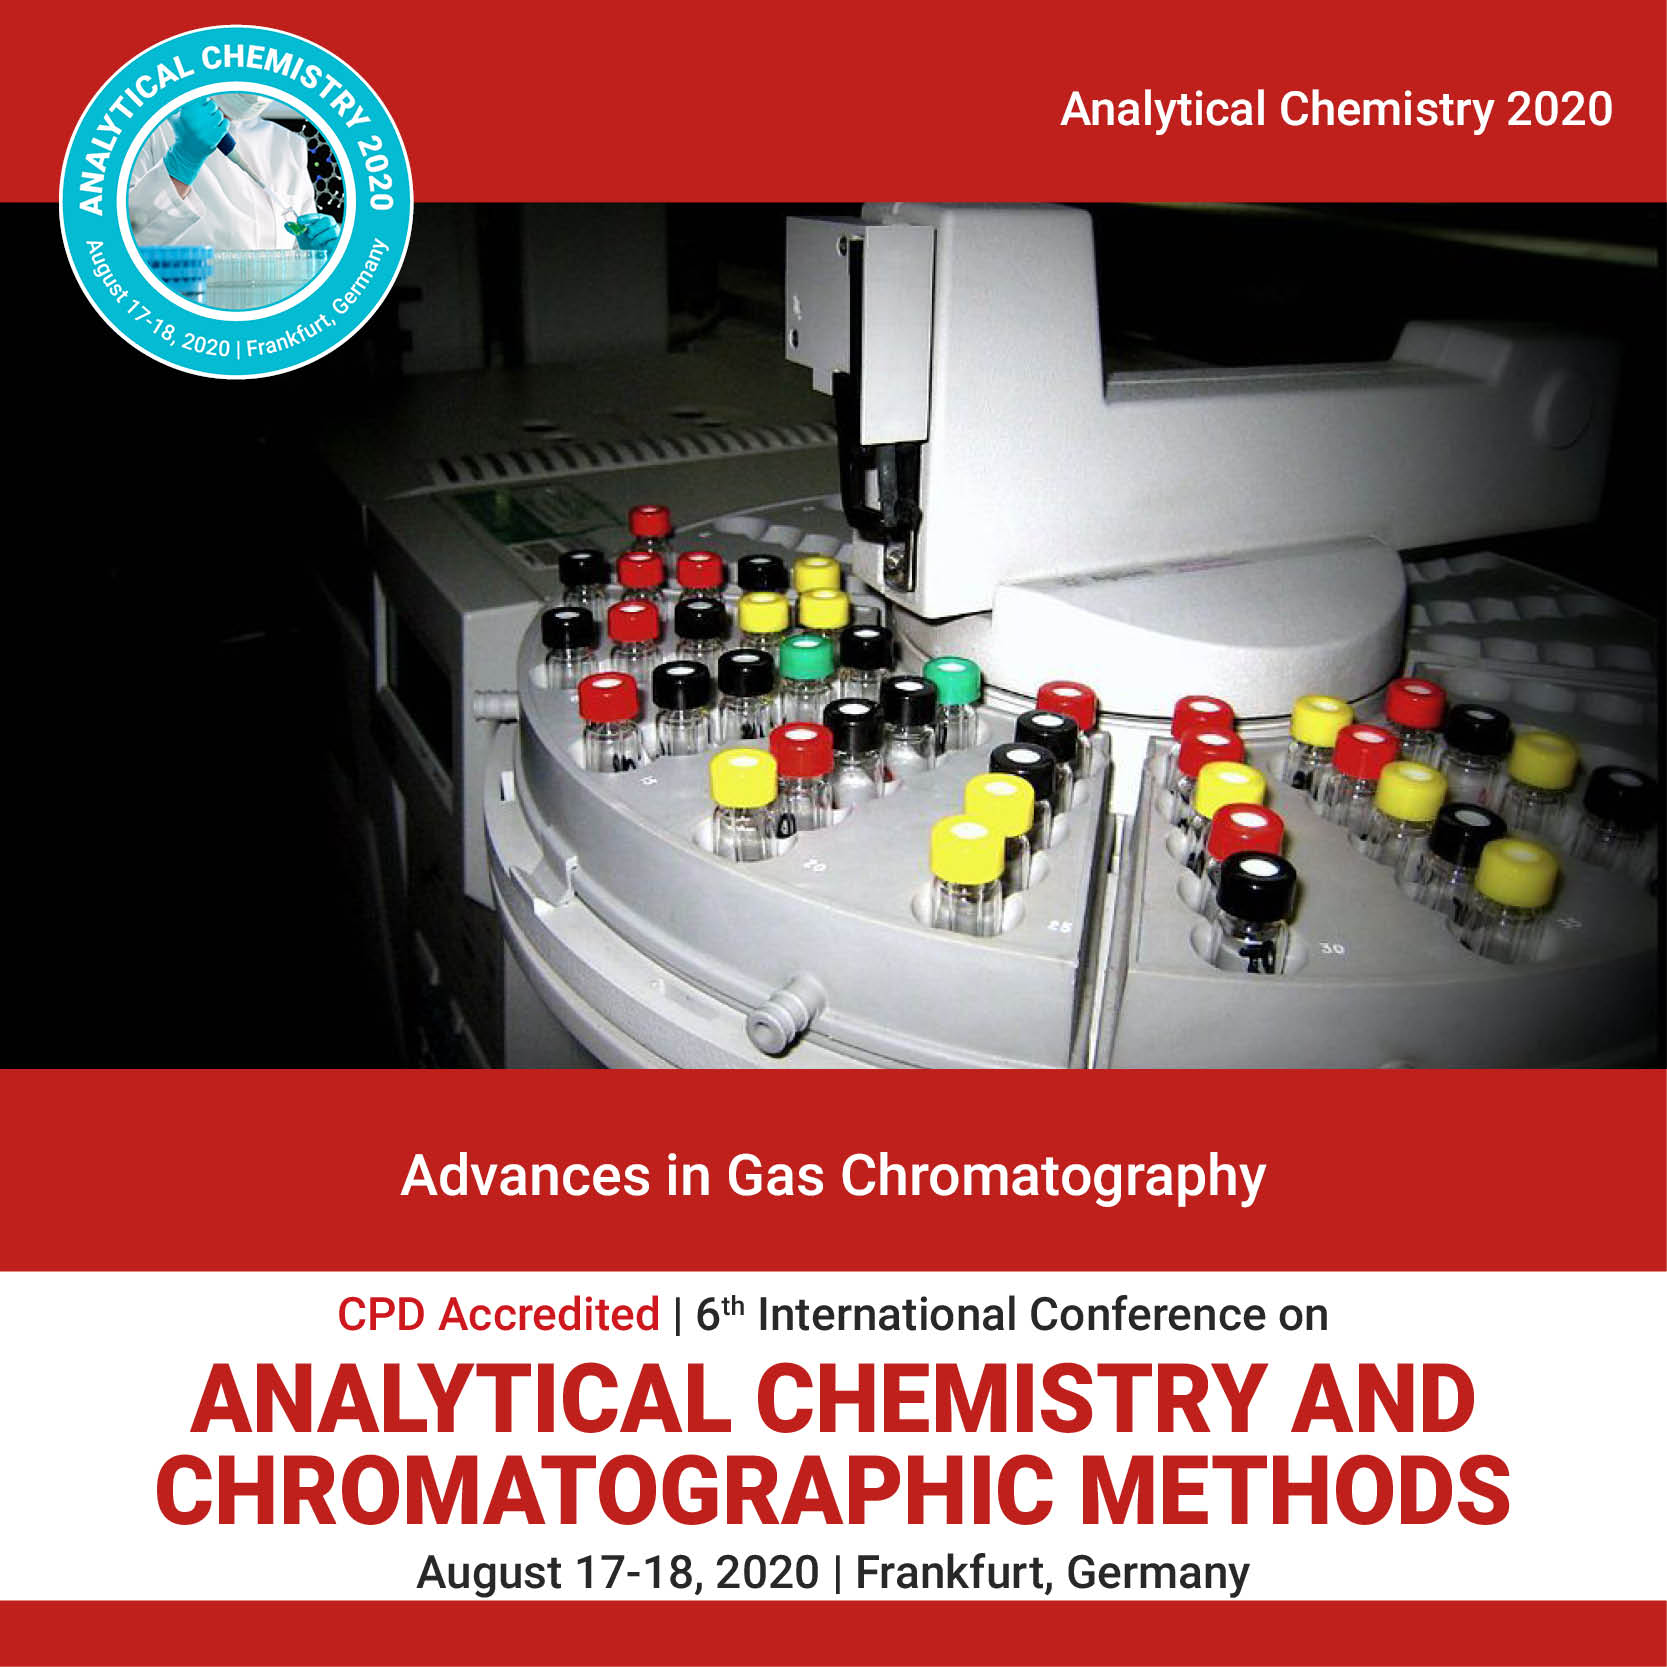 Advances in Gas Chromatography Photo